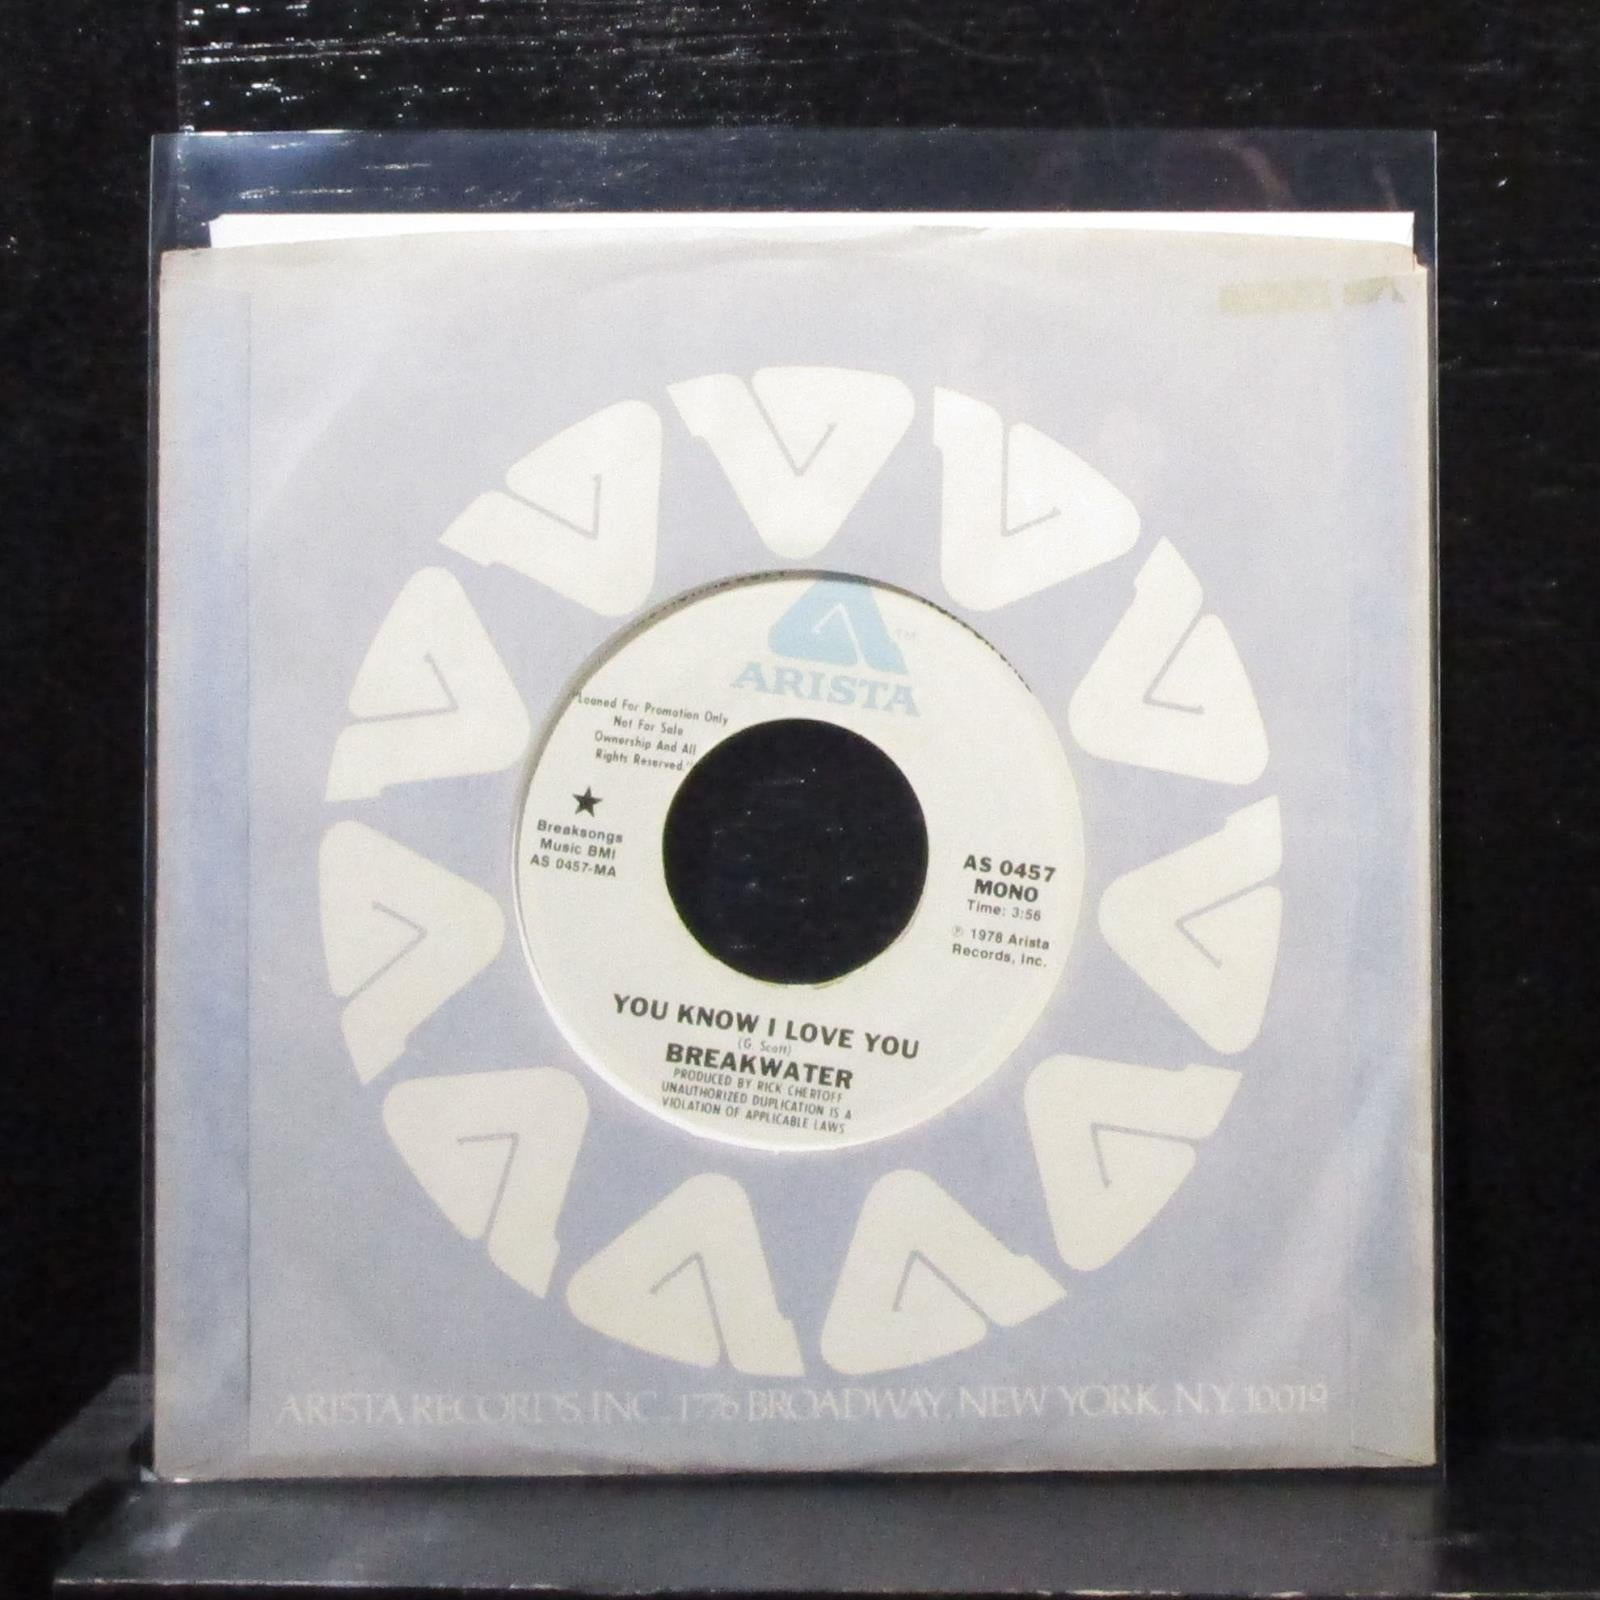 "Breakwater - You Know I Love You 7"" Mint- Promo Vinyl 45 Arista AS 0457 USA 1978"